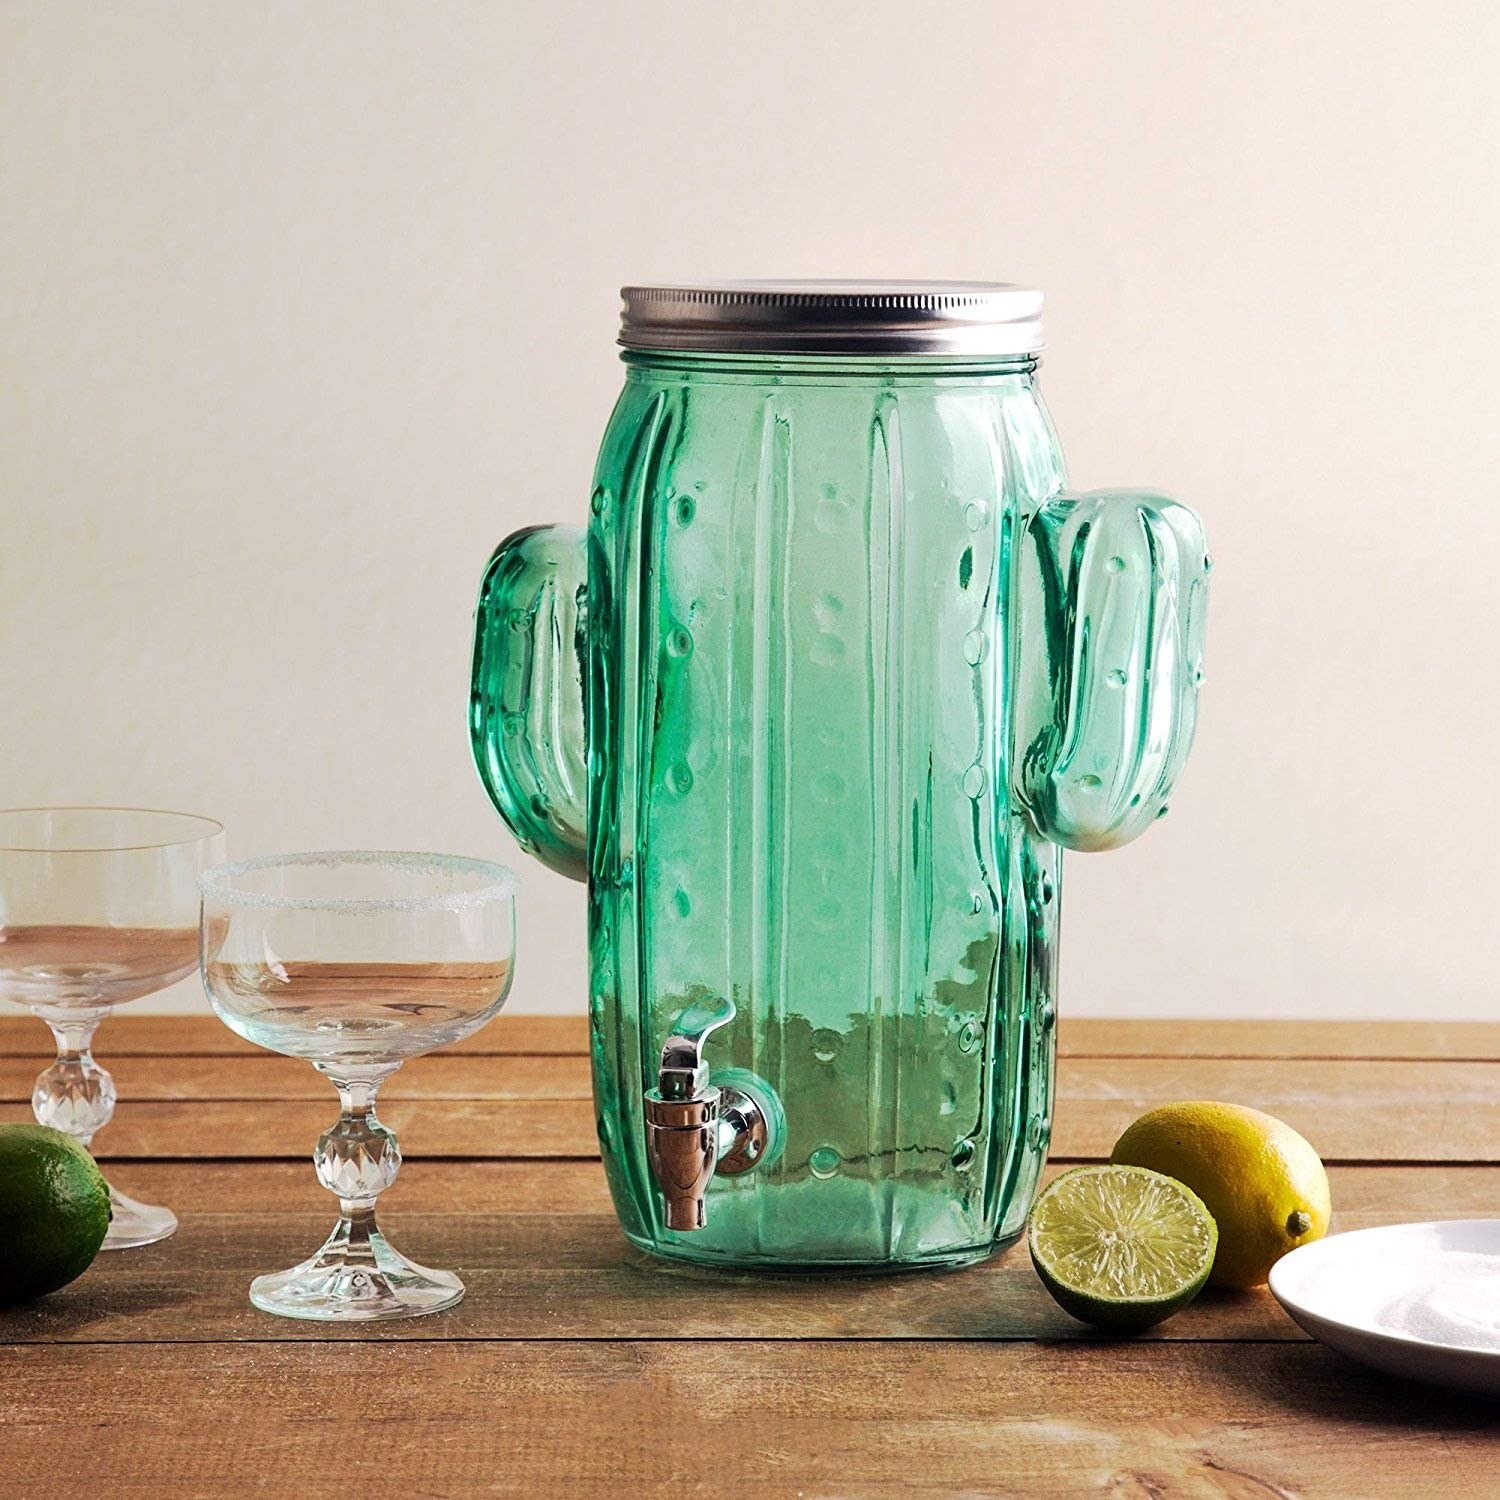 Homephile Beverage Drink Dispenser Glass Cactus One (1) Gallon Screw Lid with Easy Flow Spigot.